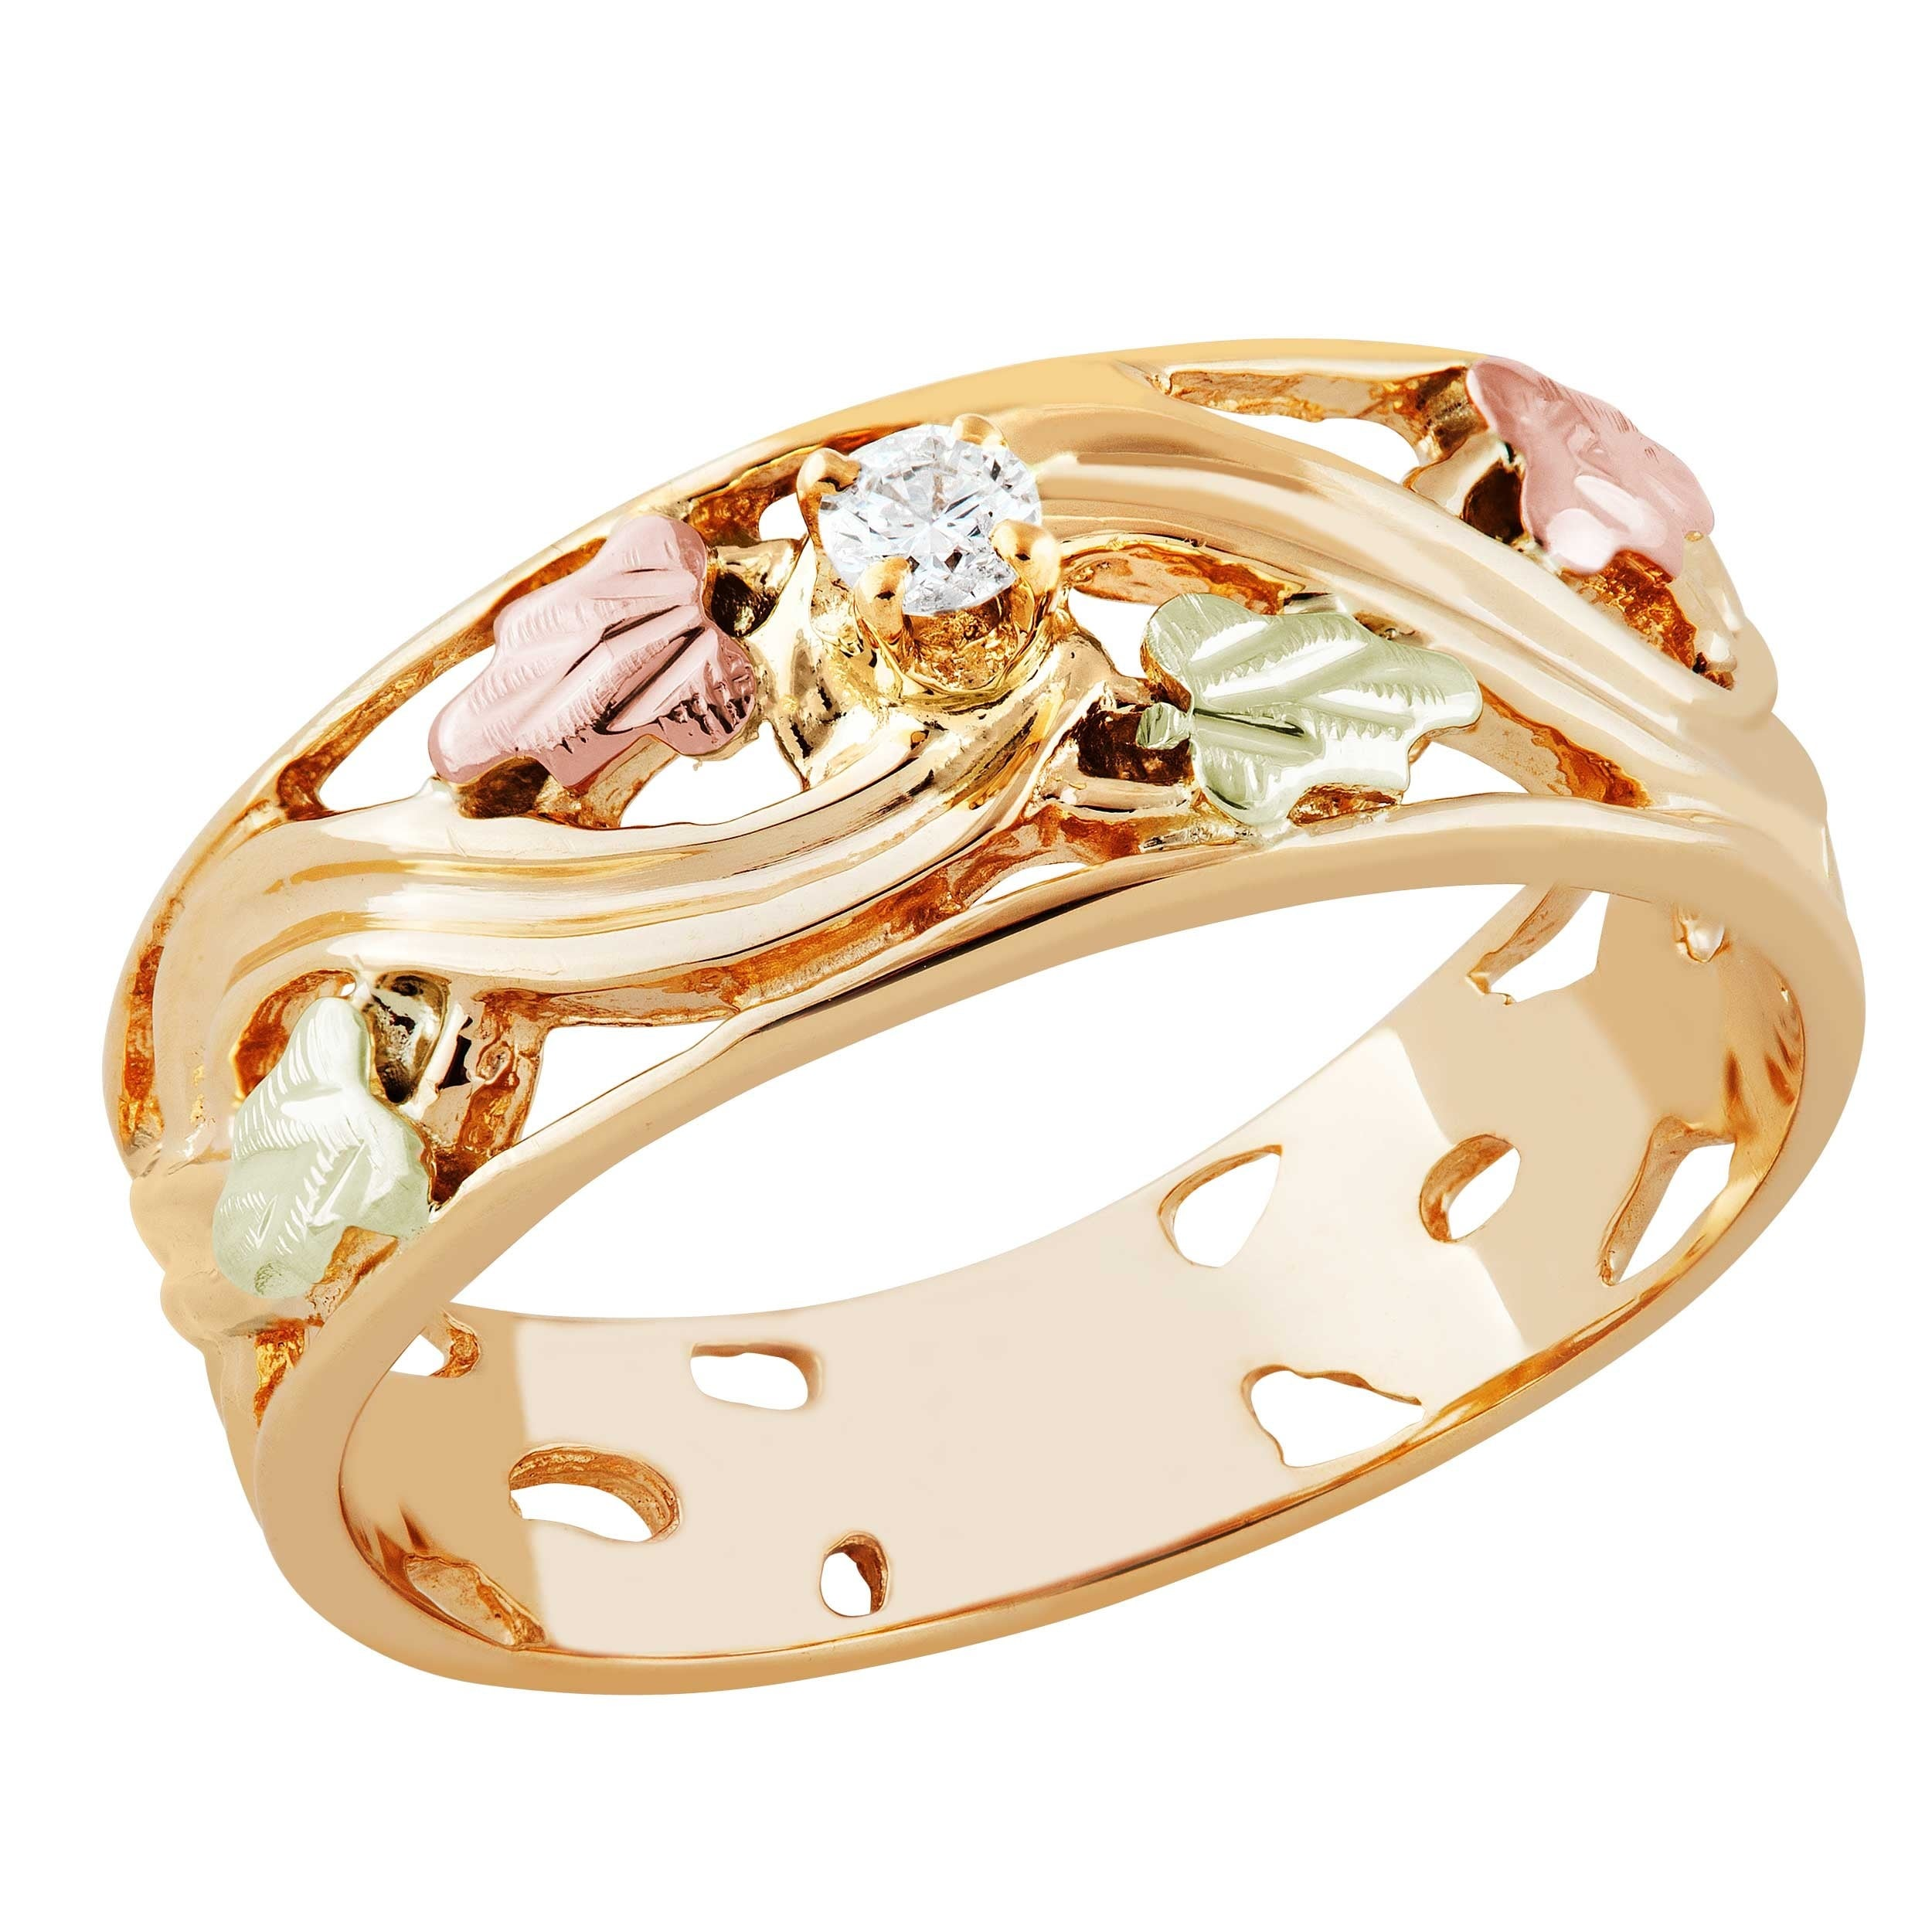 rings valerie rose engagement madison products honey hexagon ct dsc amber cut ring diamond